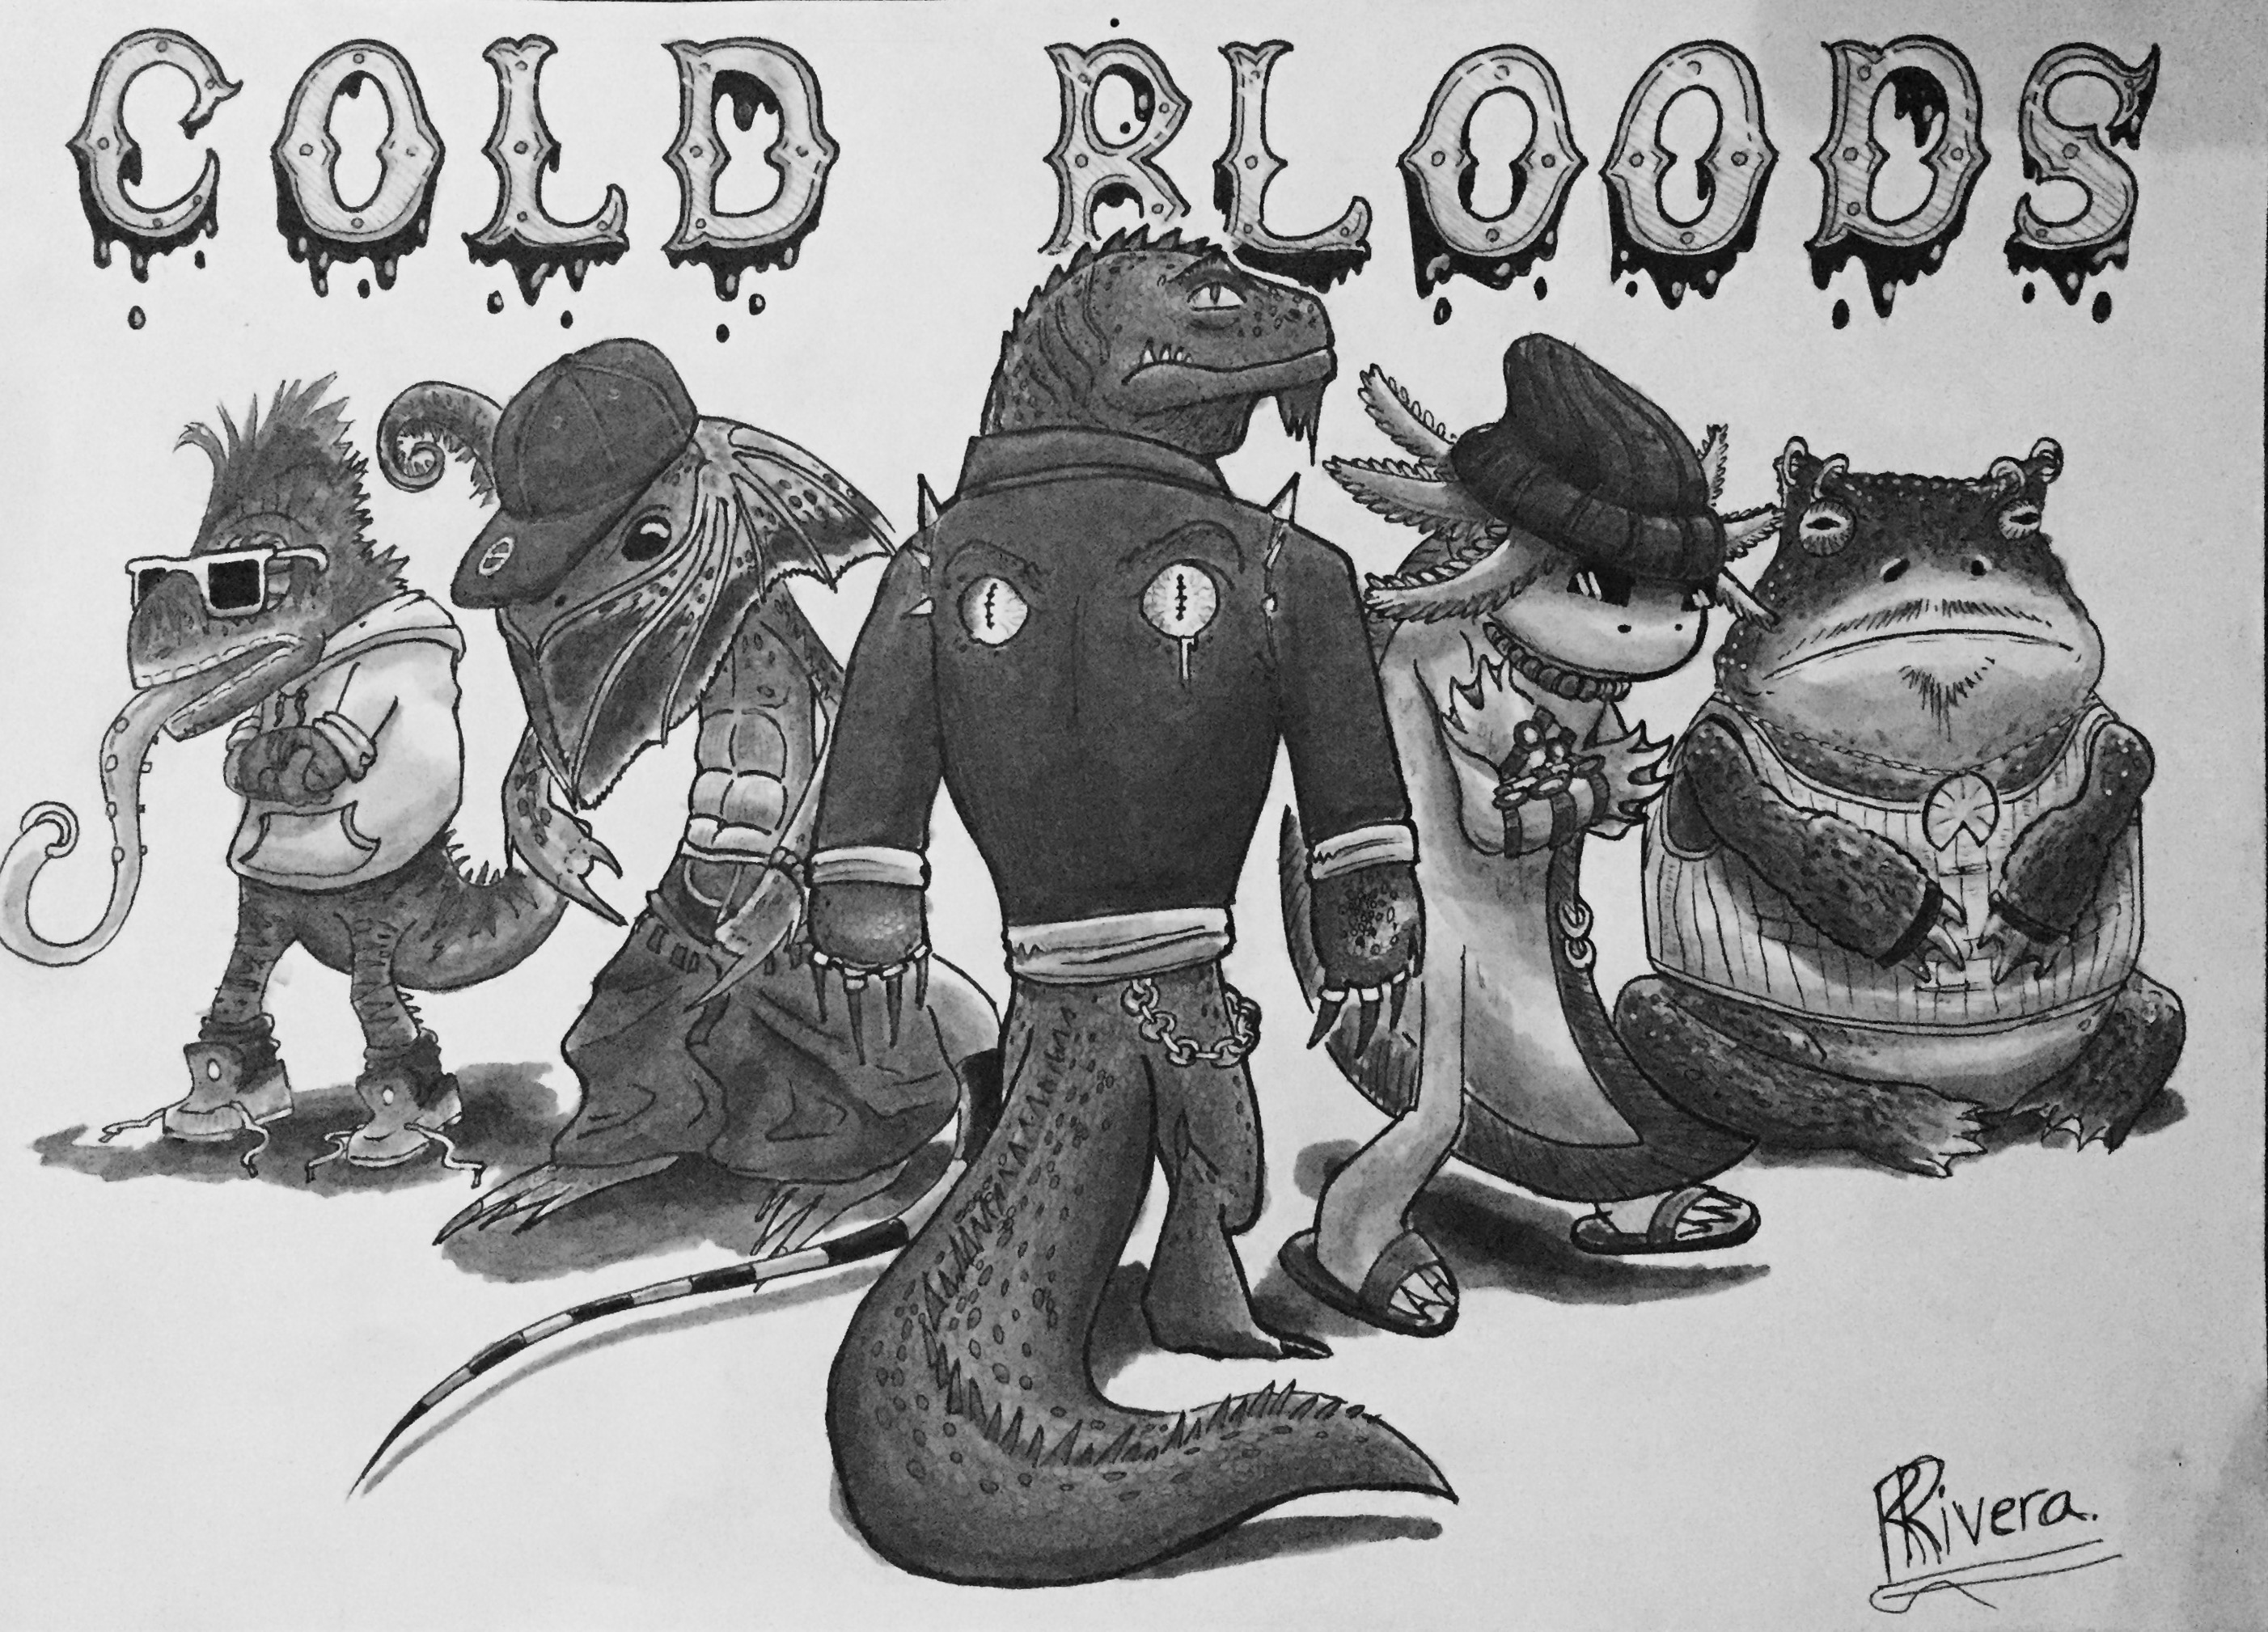 The Cold Bloods